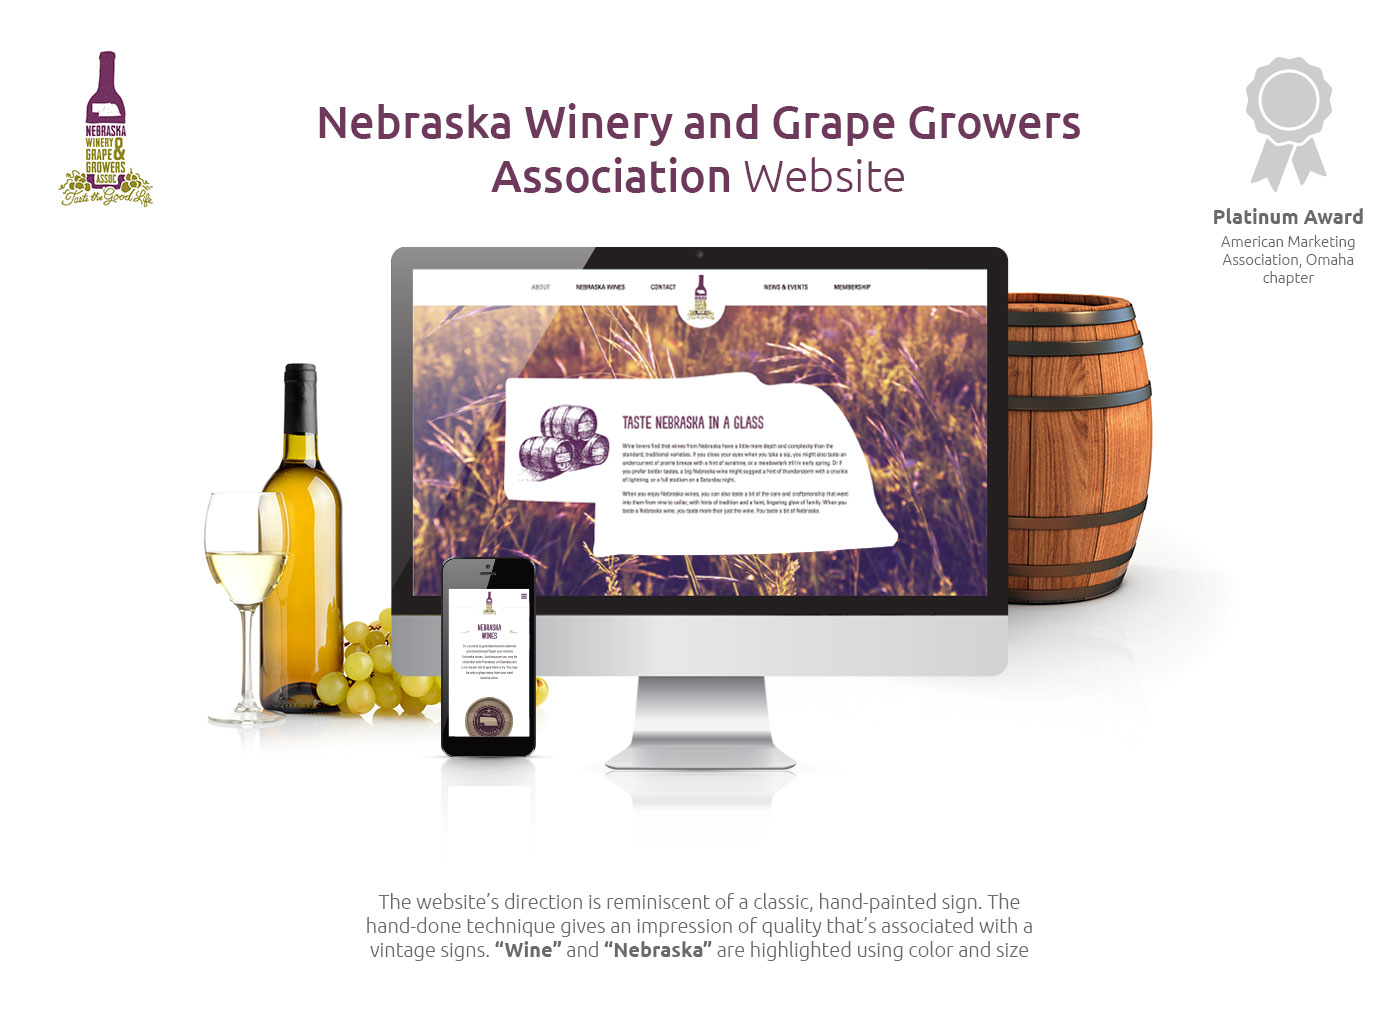 Nebraska Wine and Grape Growers Association Website